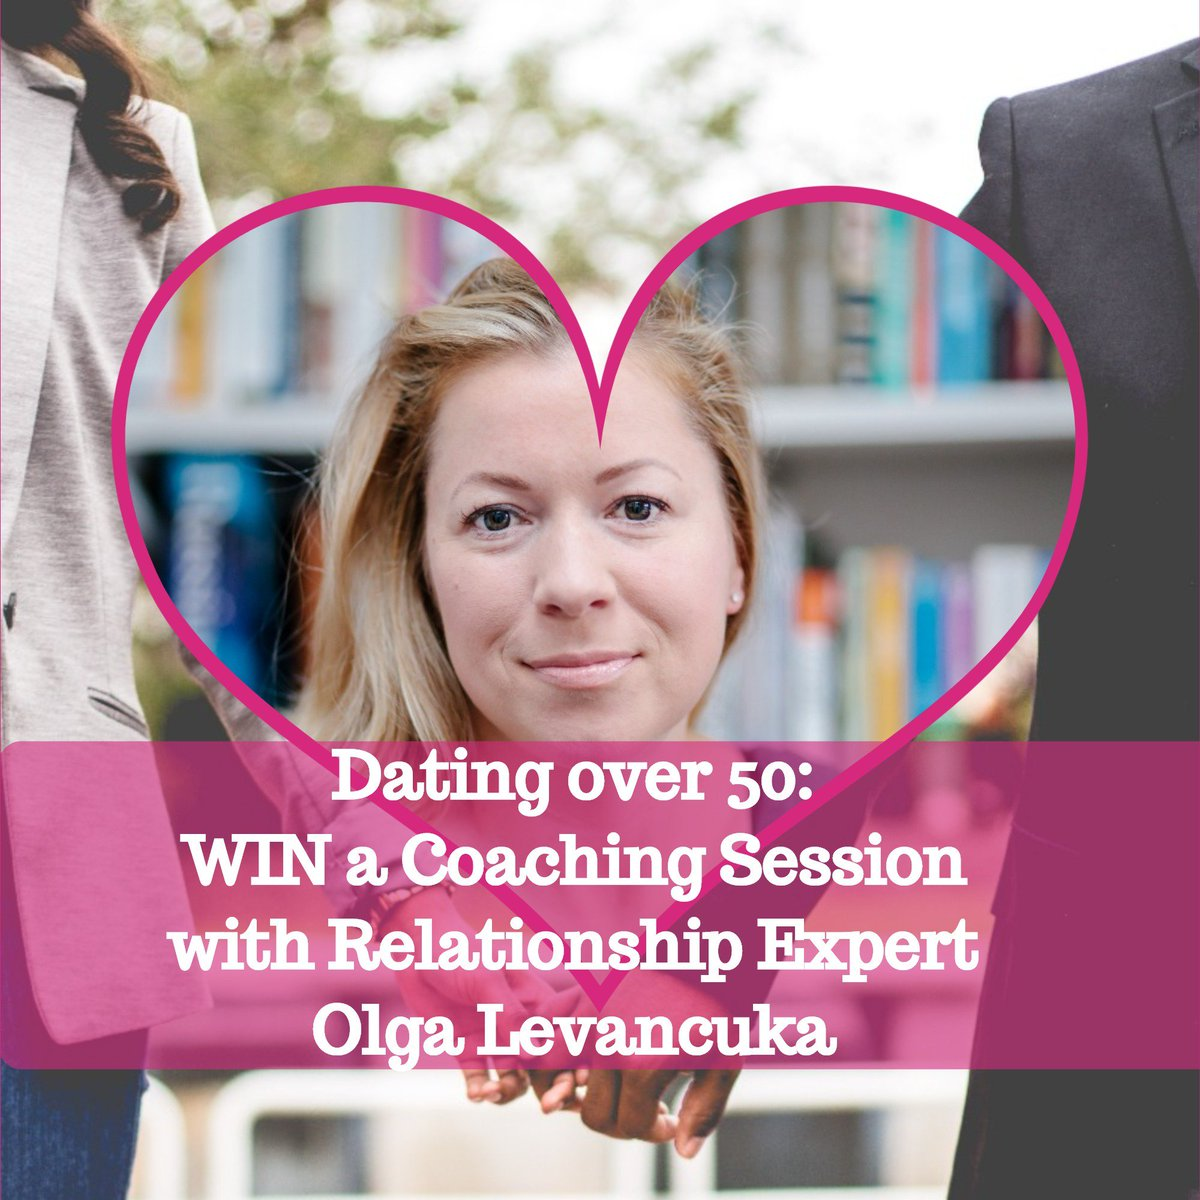 Opm dating